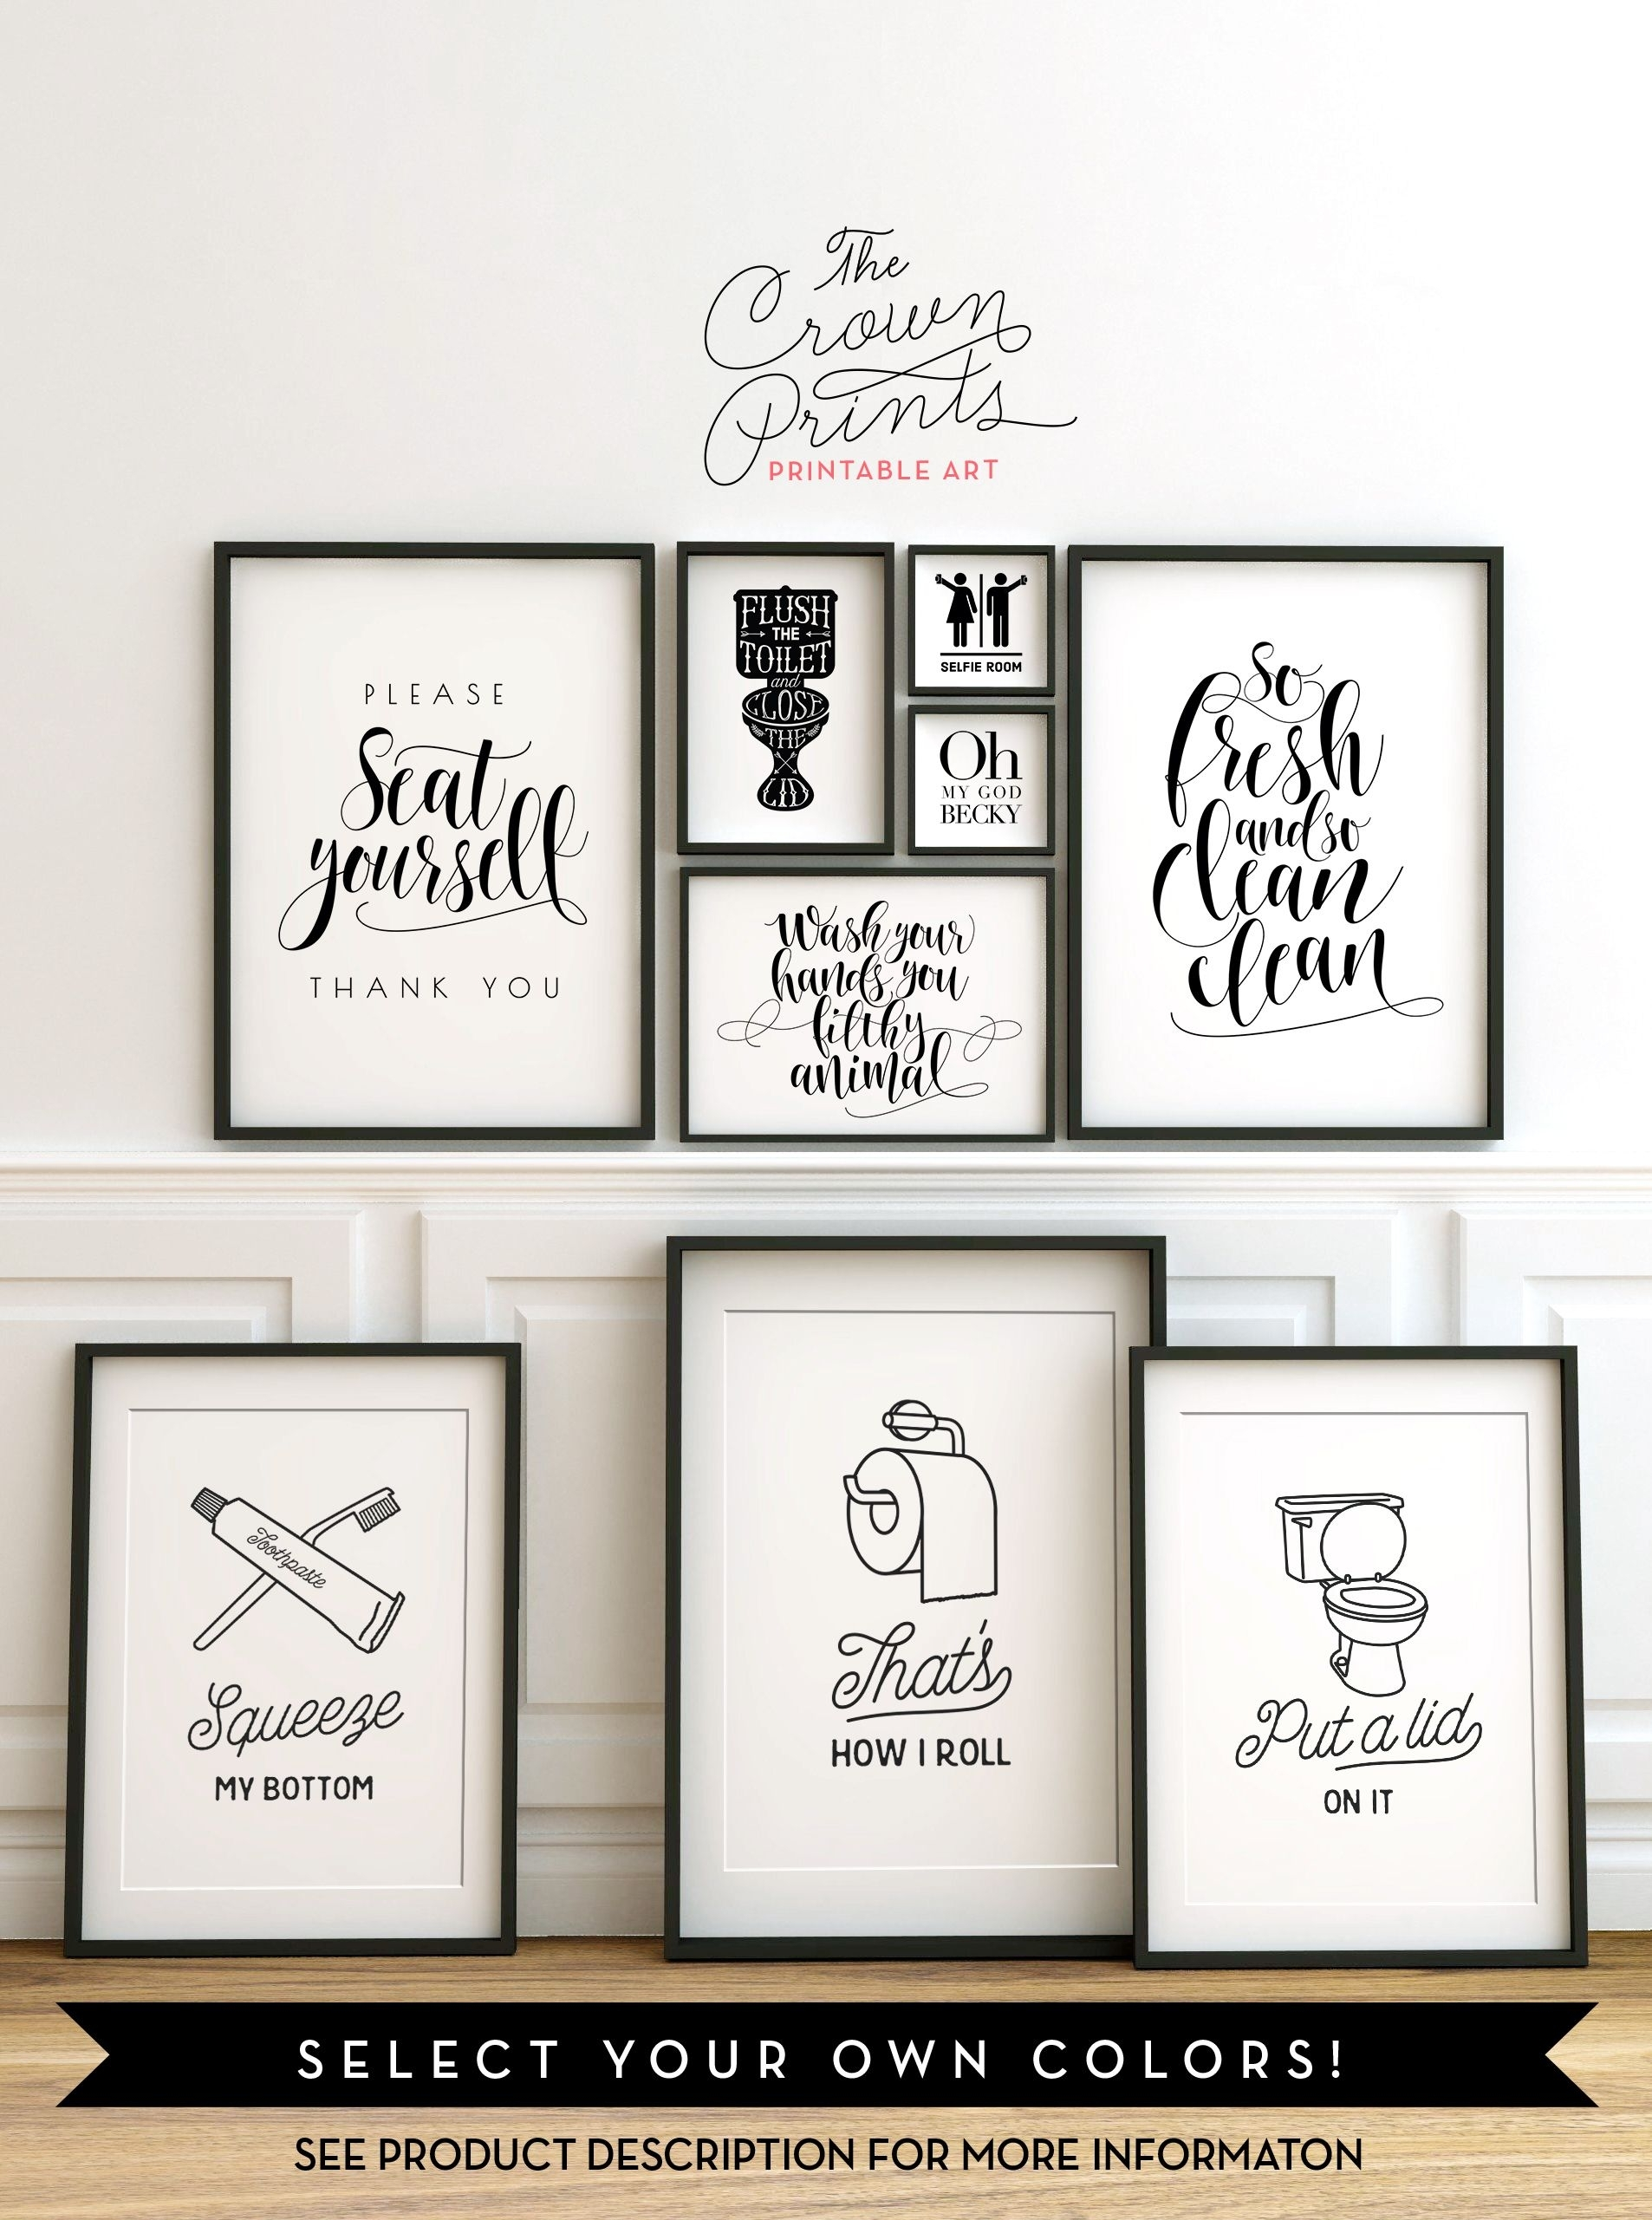 Printable Bathroom Wall Art From The Crown Prints On Etsy – Lots Of Inside Recent Wall Art For Bathroom (Gallery 1 of 20)